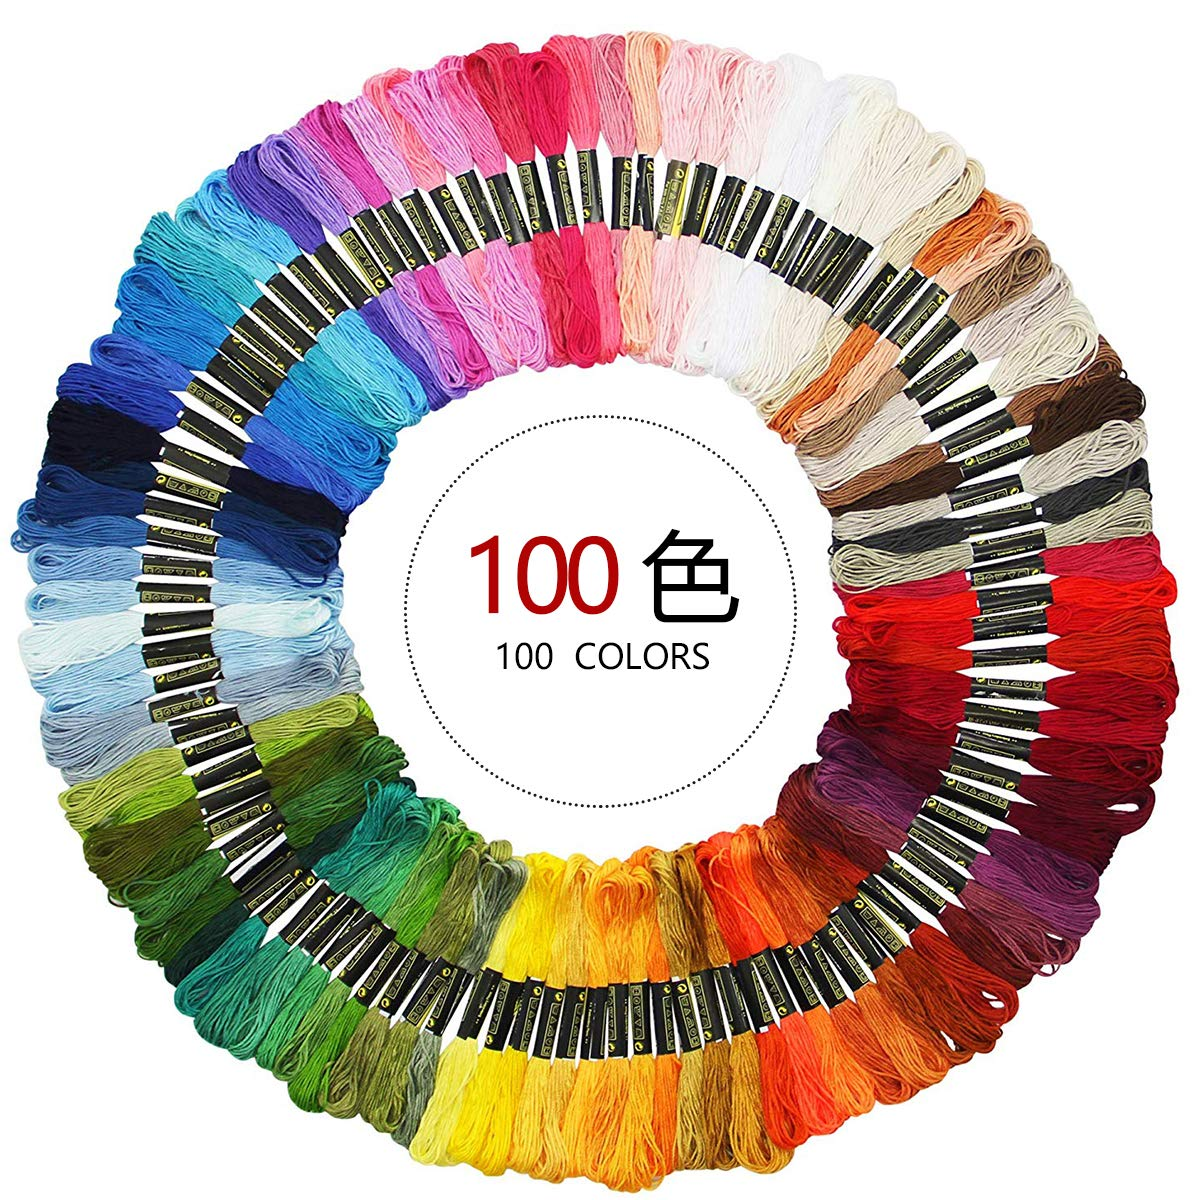 Dokpav 50/100Skeins 12 Meters 100%Cotton Embroidery Floss Cross Stitch Threads Sewing Floss Crafts DIY Floss-Rainbow Color (100)